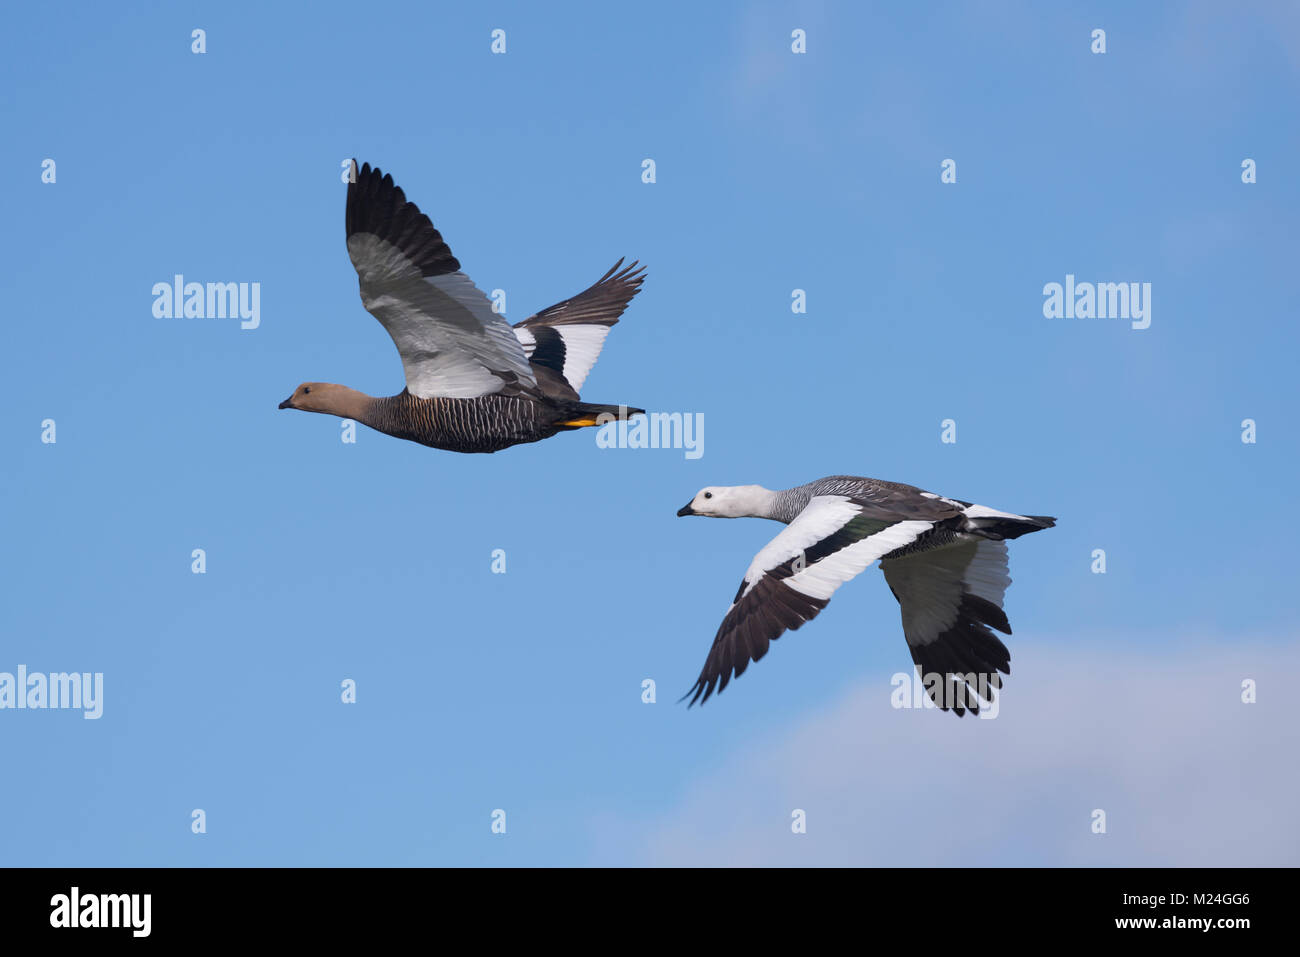 A pair of Upland Goose in flight - Stock Image